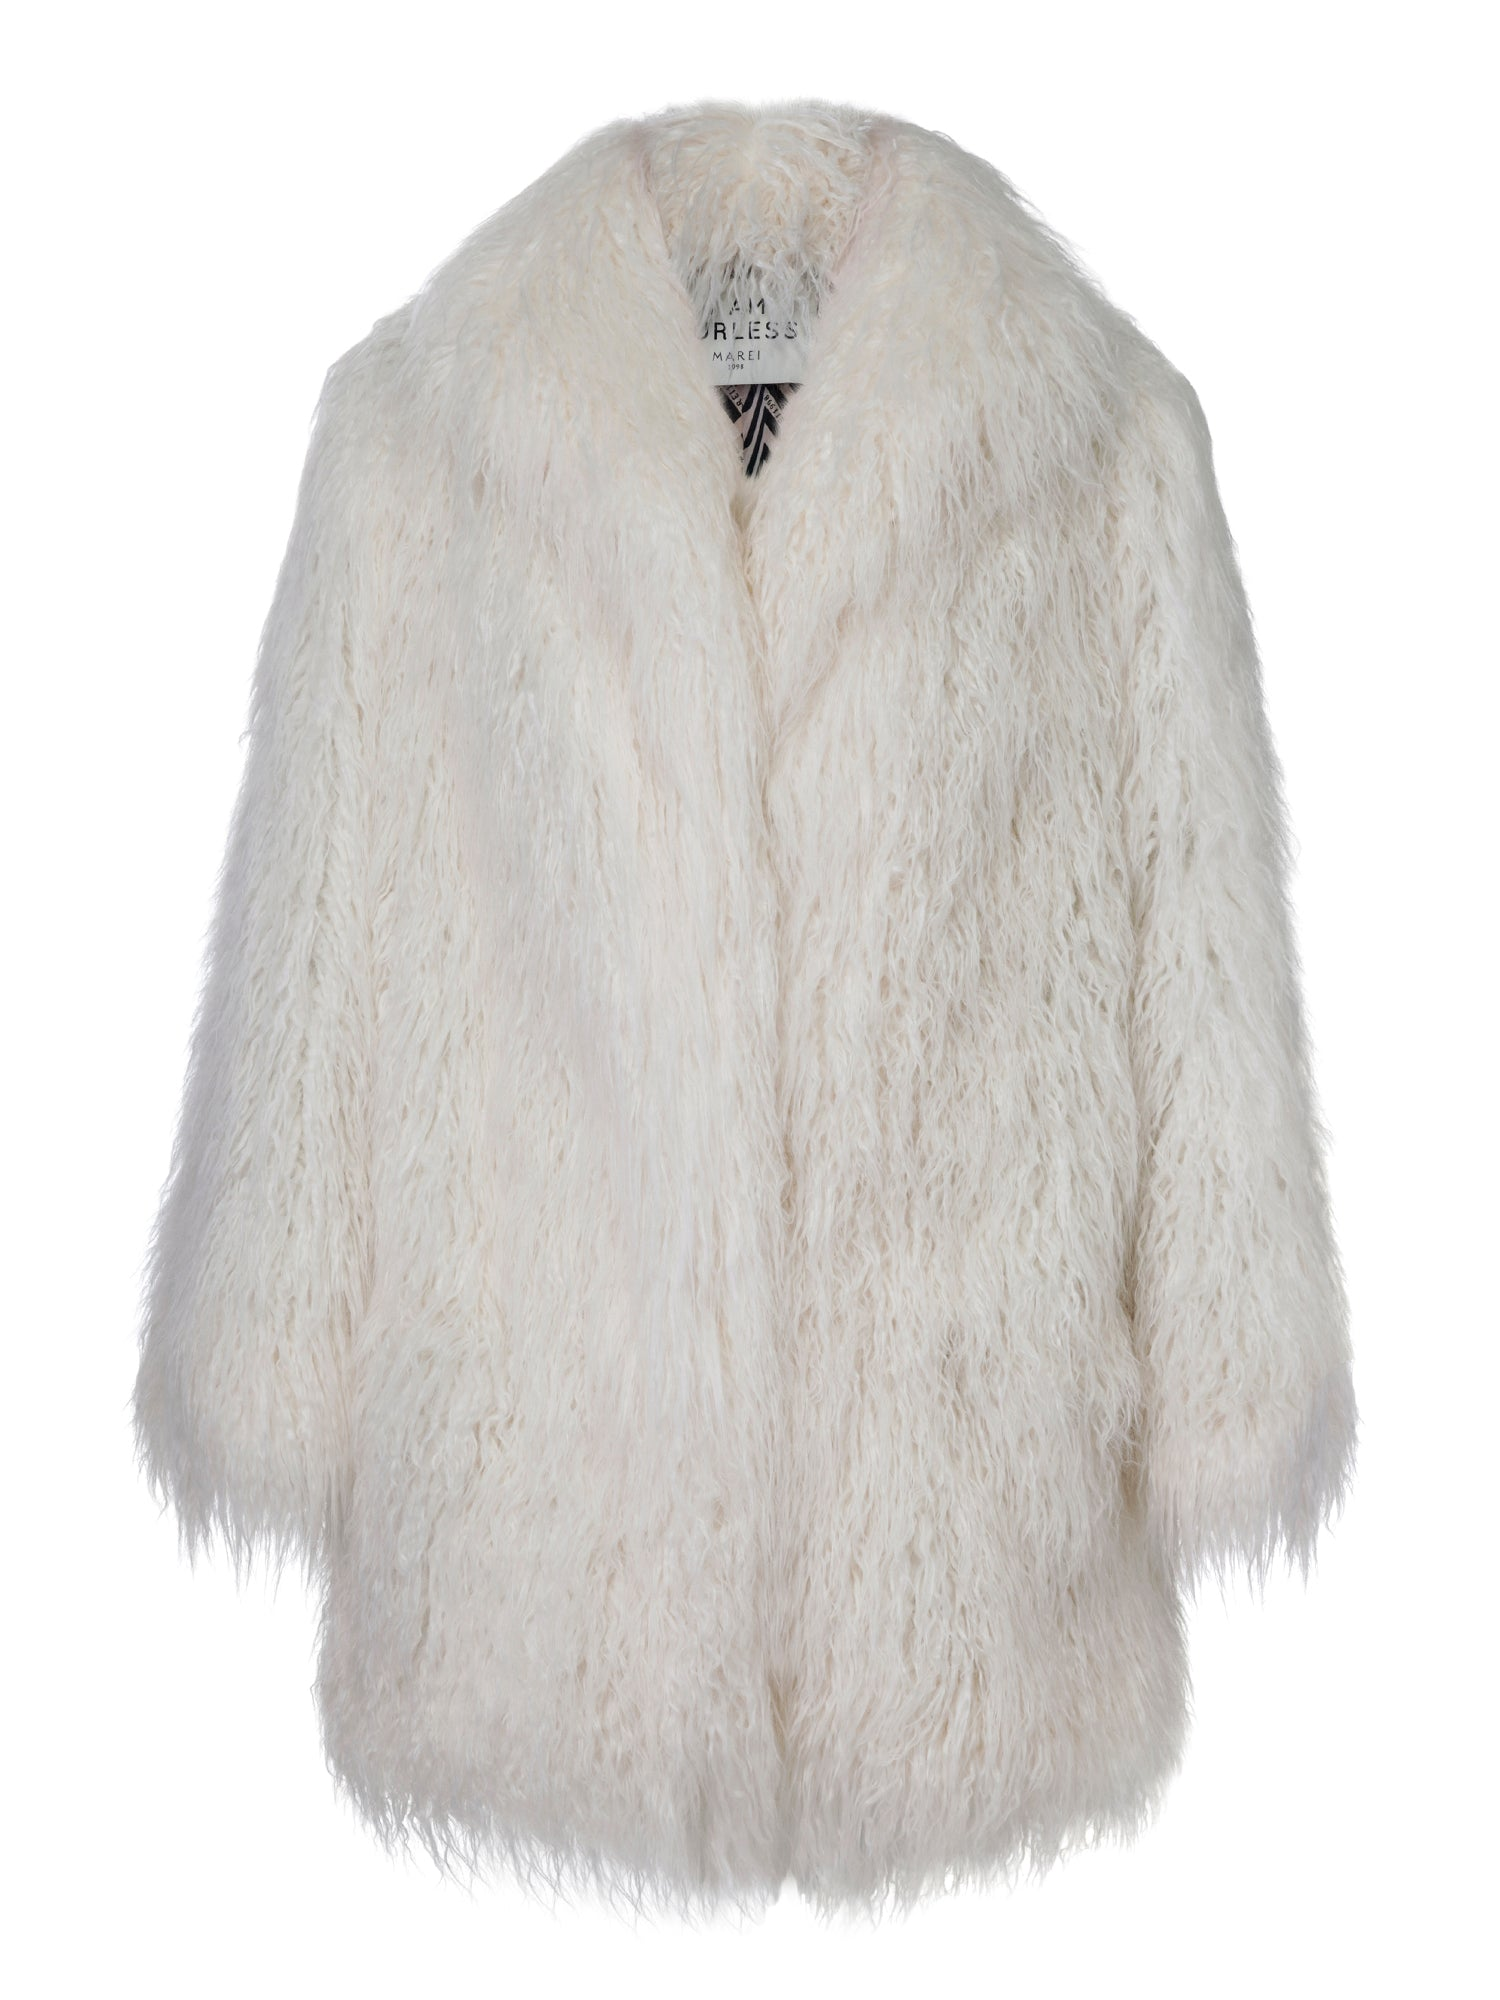 A Packshot Of Marei1998's Ivy Faux Fur Coat In Ivory Color. Made From Luscious Long Pile Faux Fur, It Features A Slight A-Lined Silhouette And Full Lining.